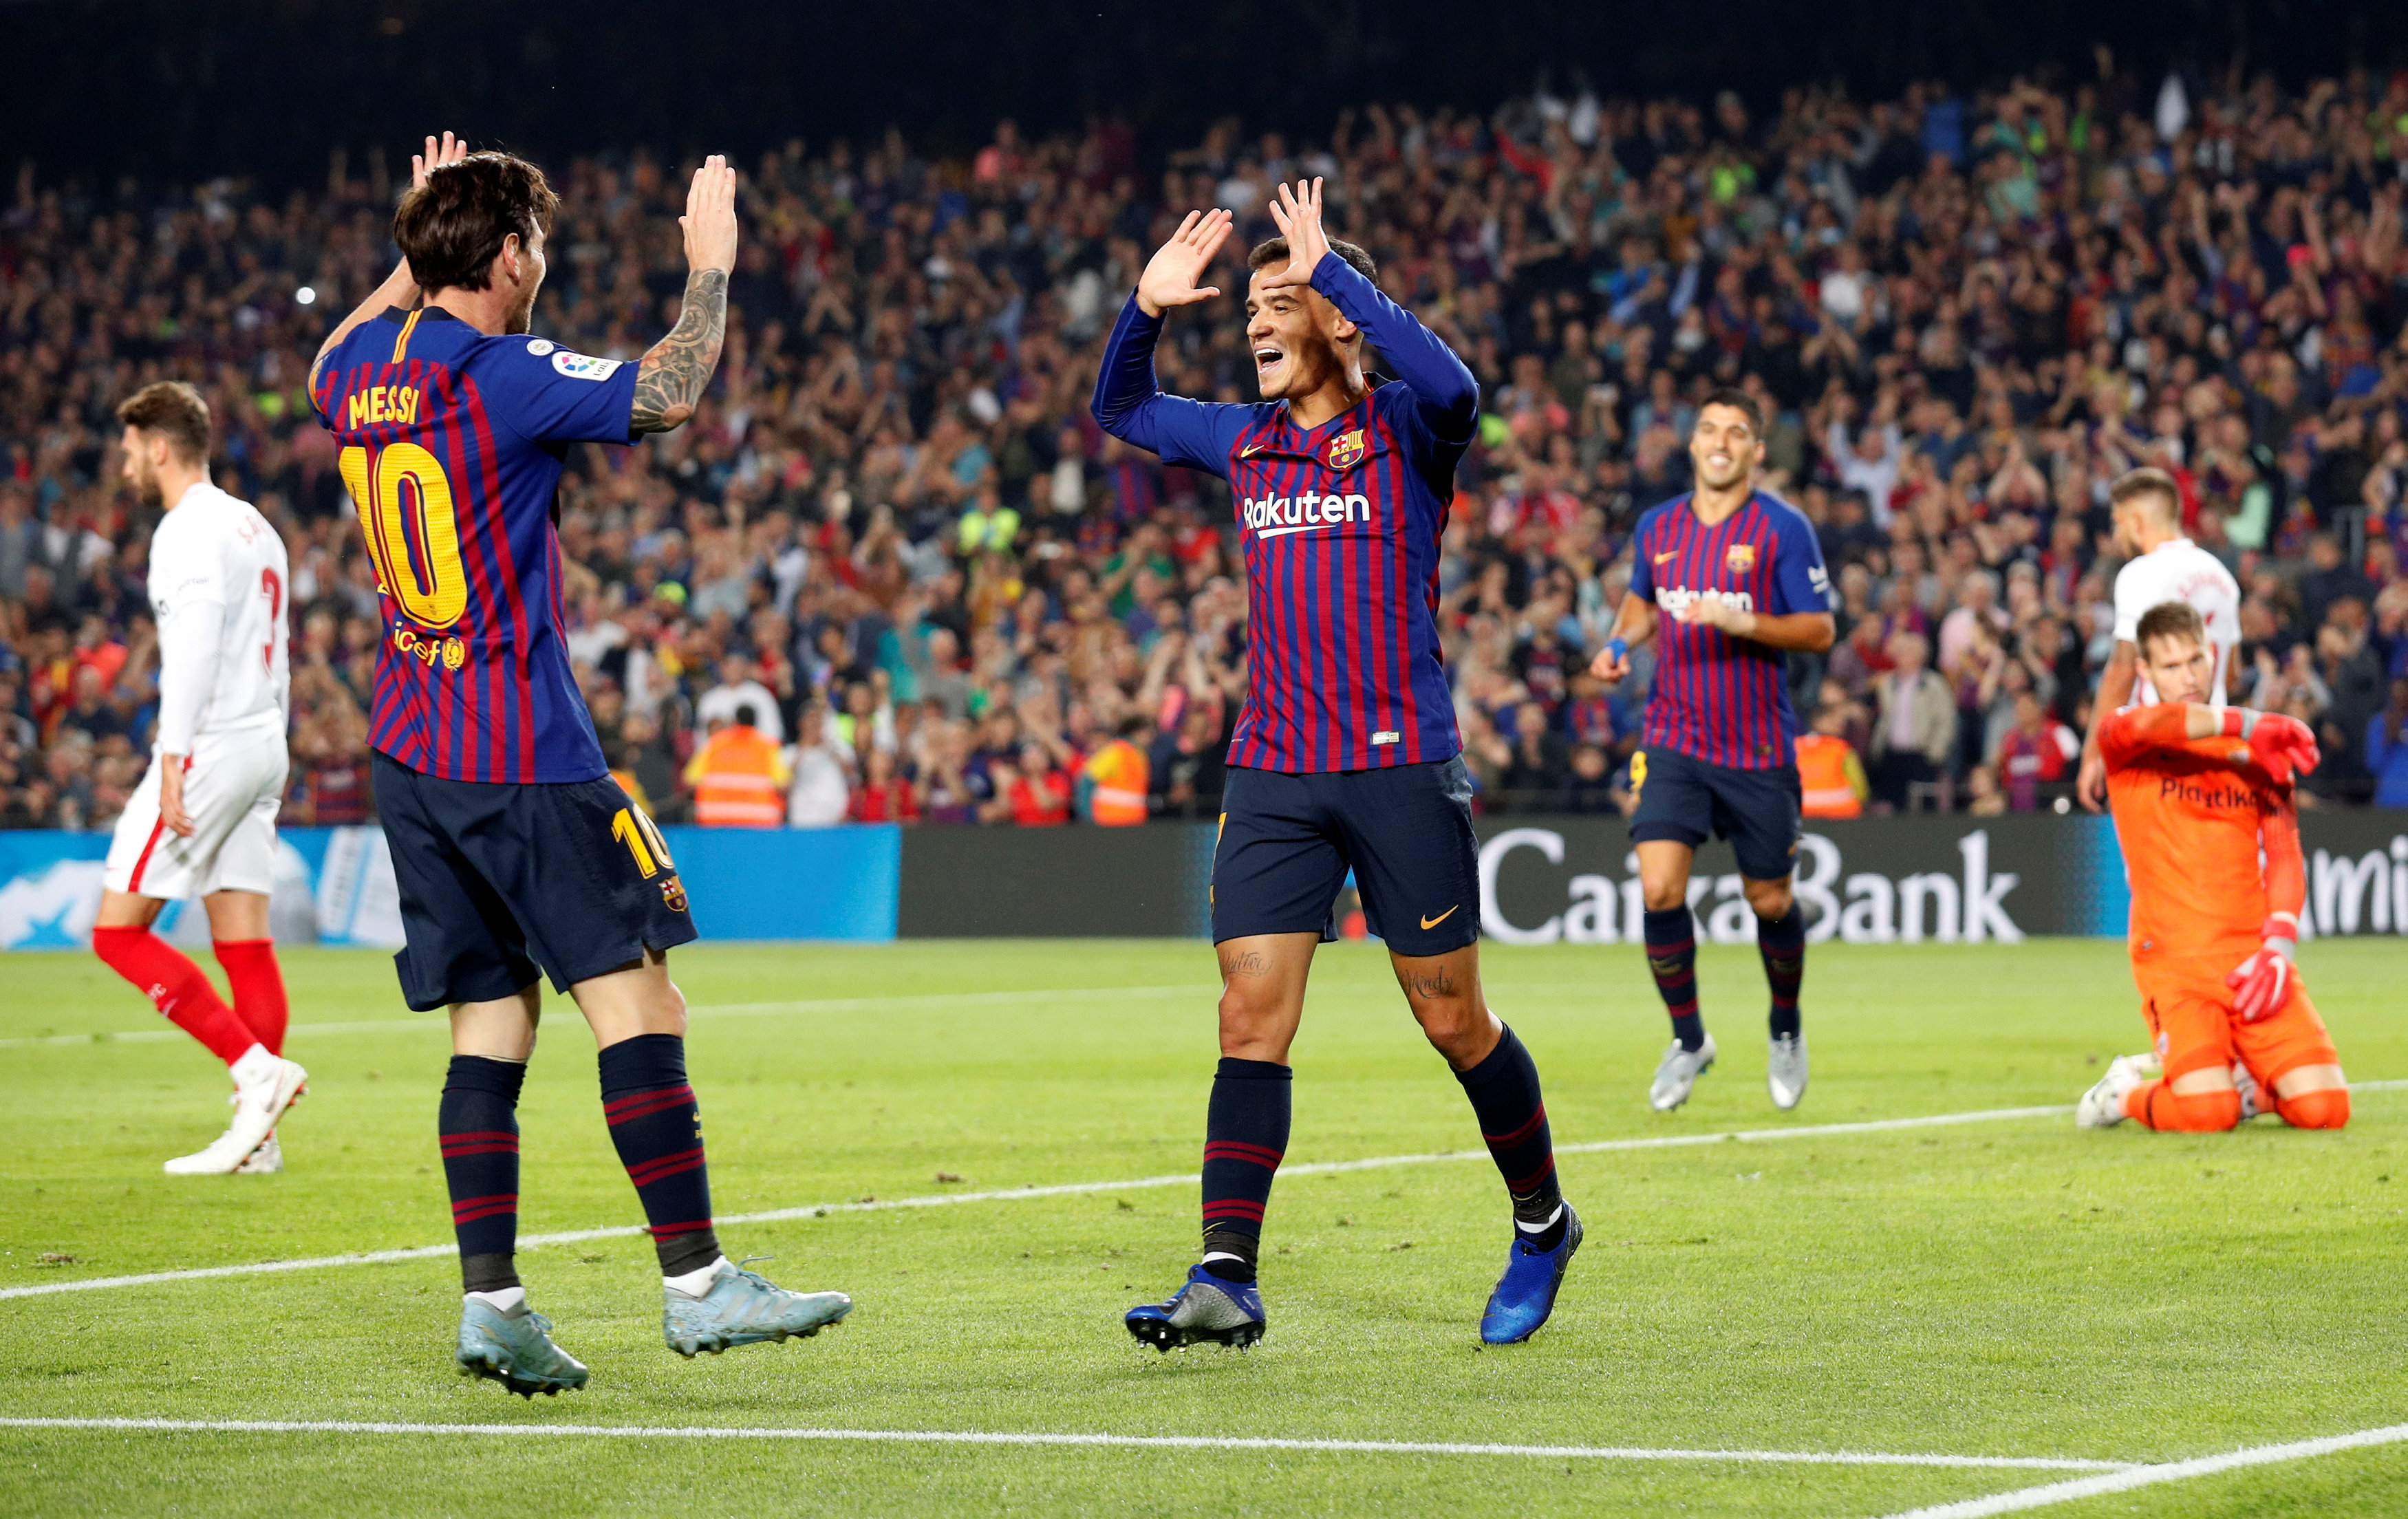 Football: Barca go top with win over Sevilla